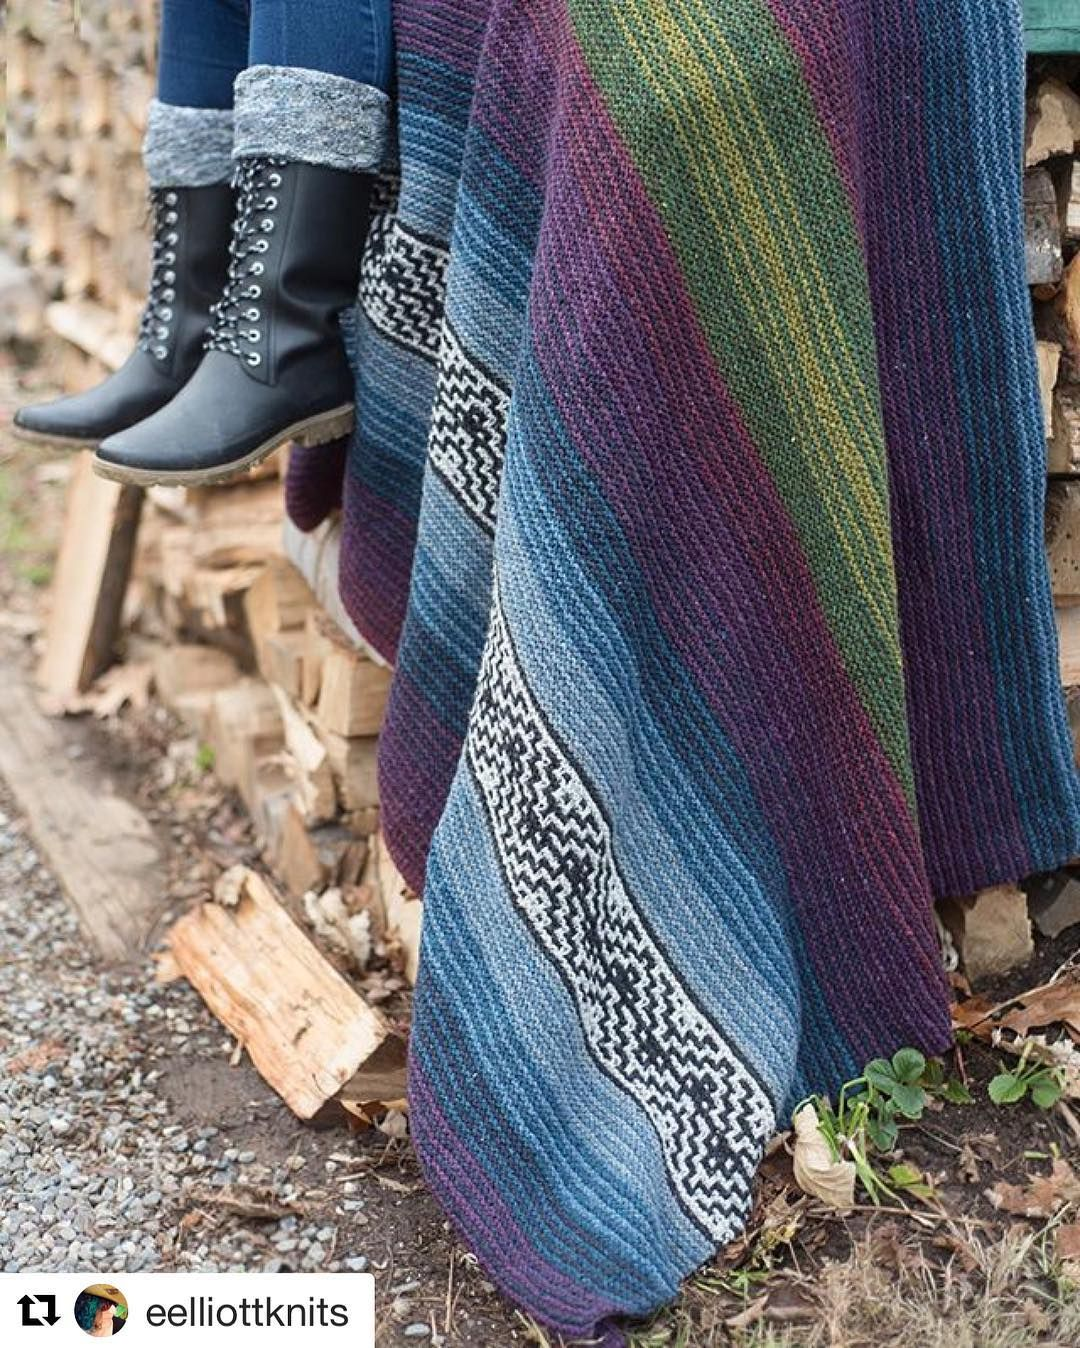 Tell me you don't want to stop whatever you are doing and go make this blanket?  Ive been thinking about it ever since I photographed it for her. Burgoo a new design from @eelliottknits  on @ravelry now. #treatyoself #knittersofinstagram #galezuckerphotography #knitting @brooklyntweed